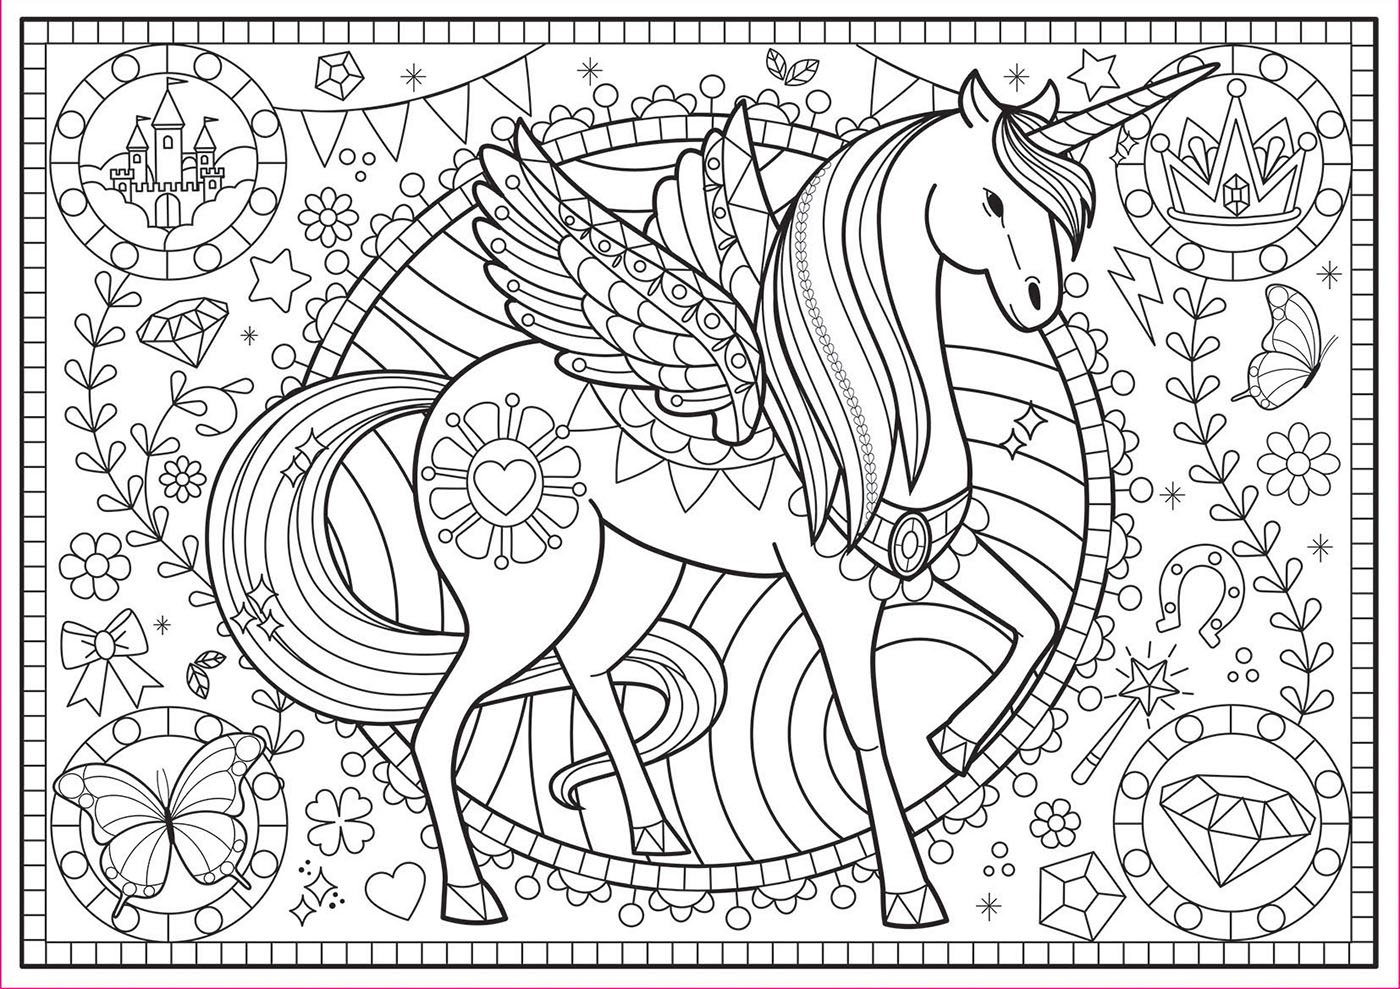 Colouring Puzzles - Einhorn